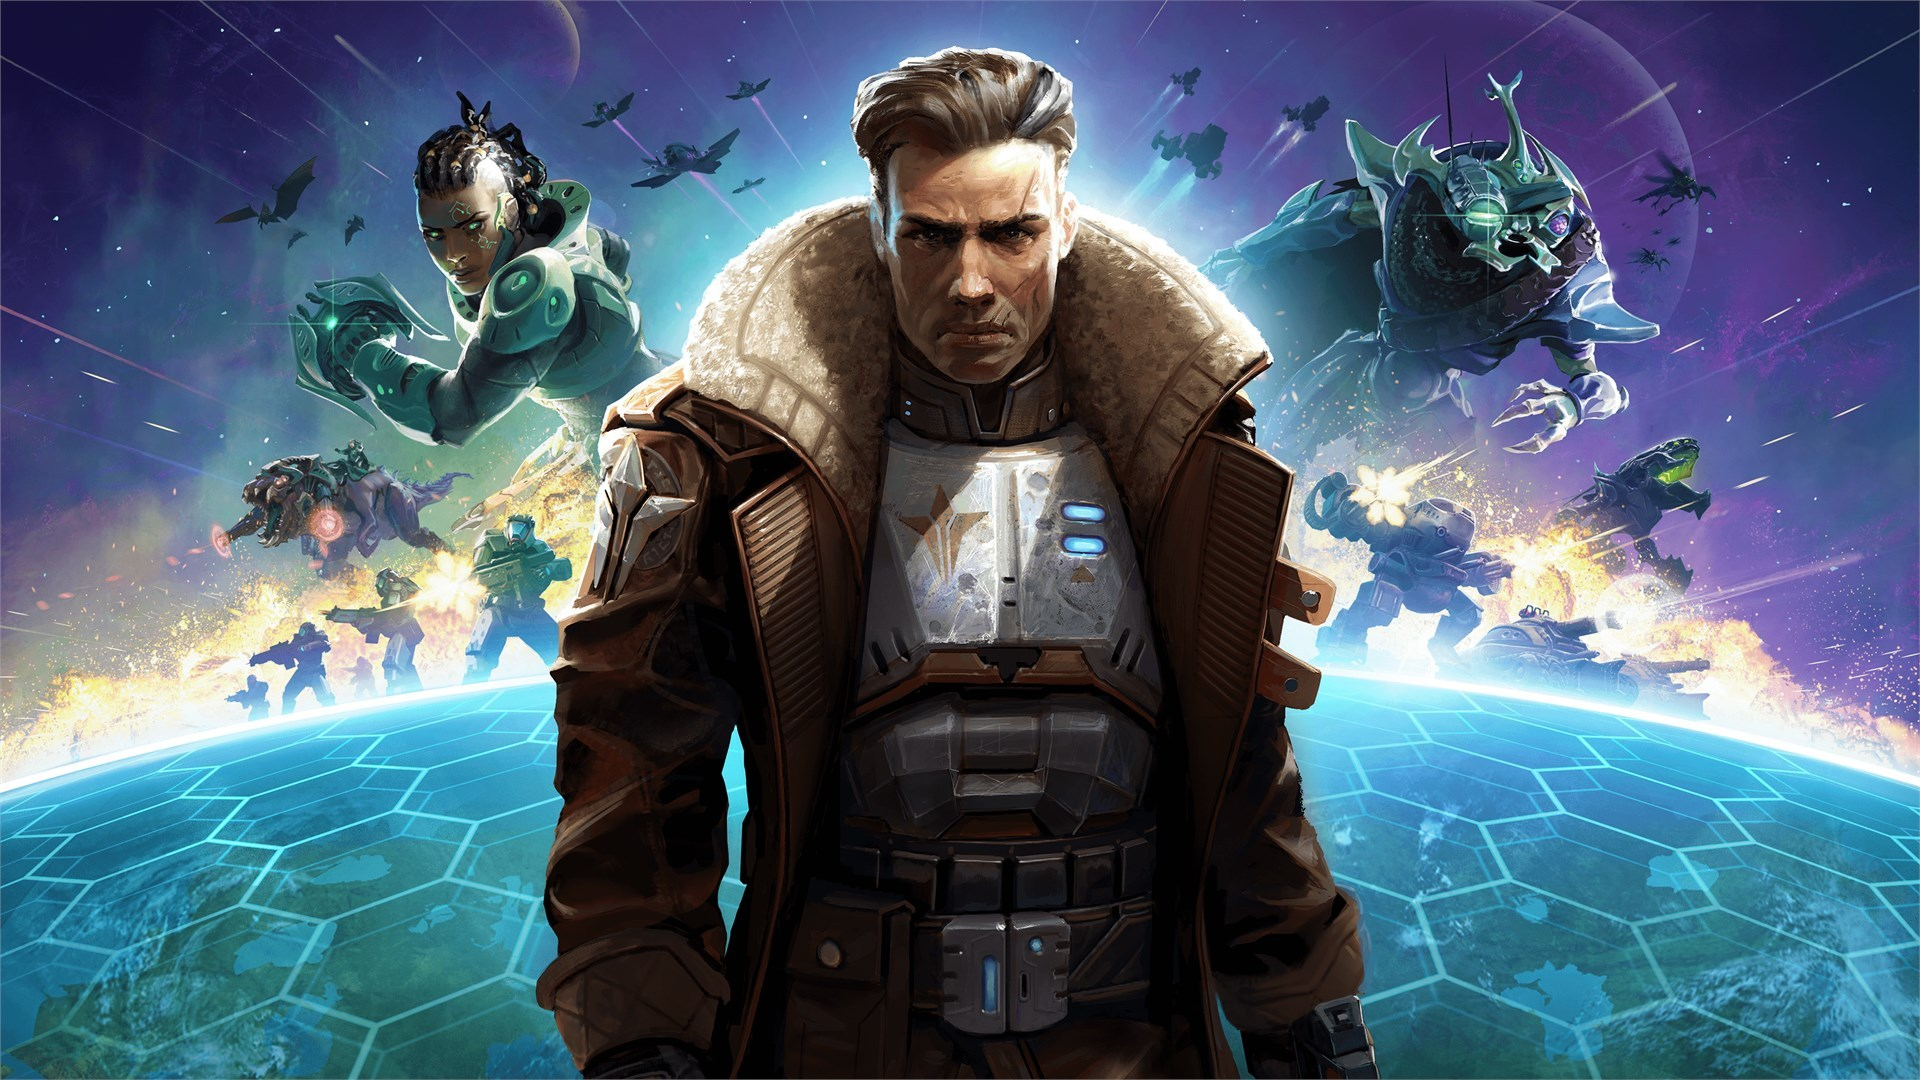 Build Extraordinary Empires Today in Age of Wonders: Planetfall on Xbox One